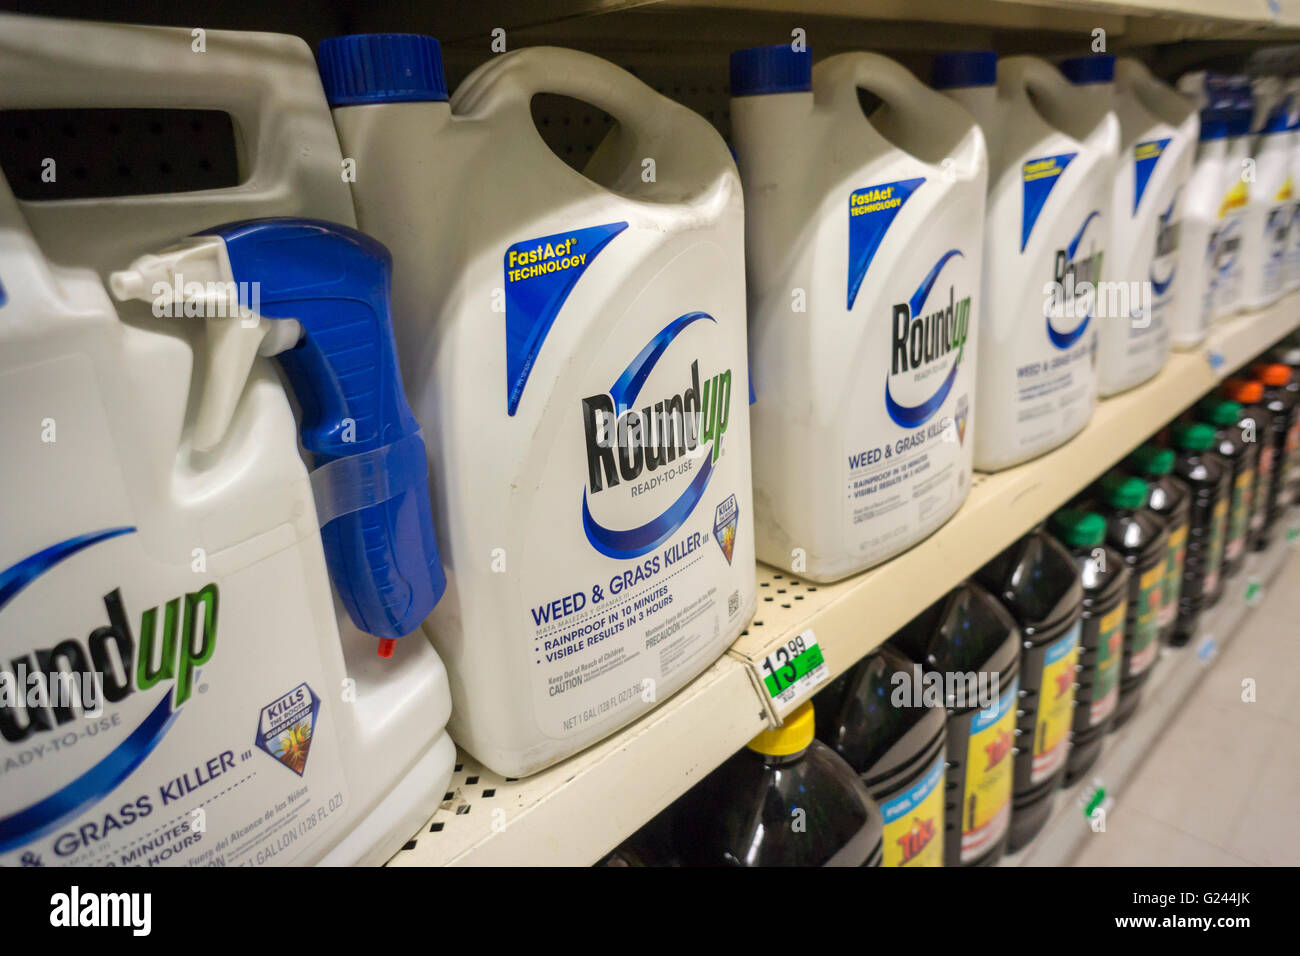 Containers Of Monsanto Roundup Weed Killer On A Garden Supply Store Shelf In New York Monday May 23 2016 Bayer AG The German Pharmaceutical And